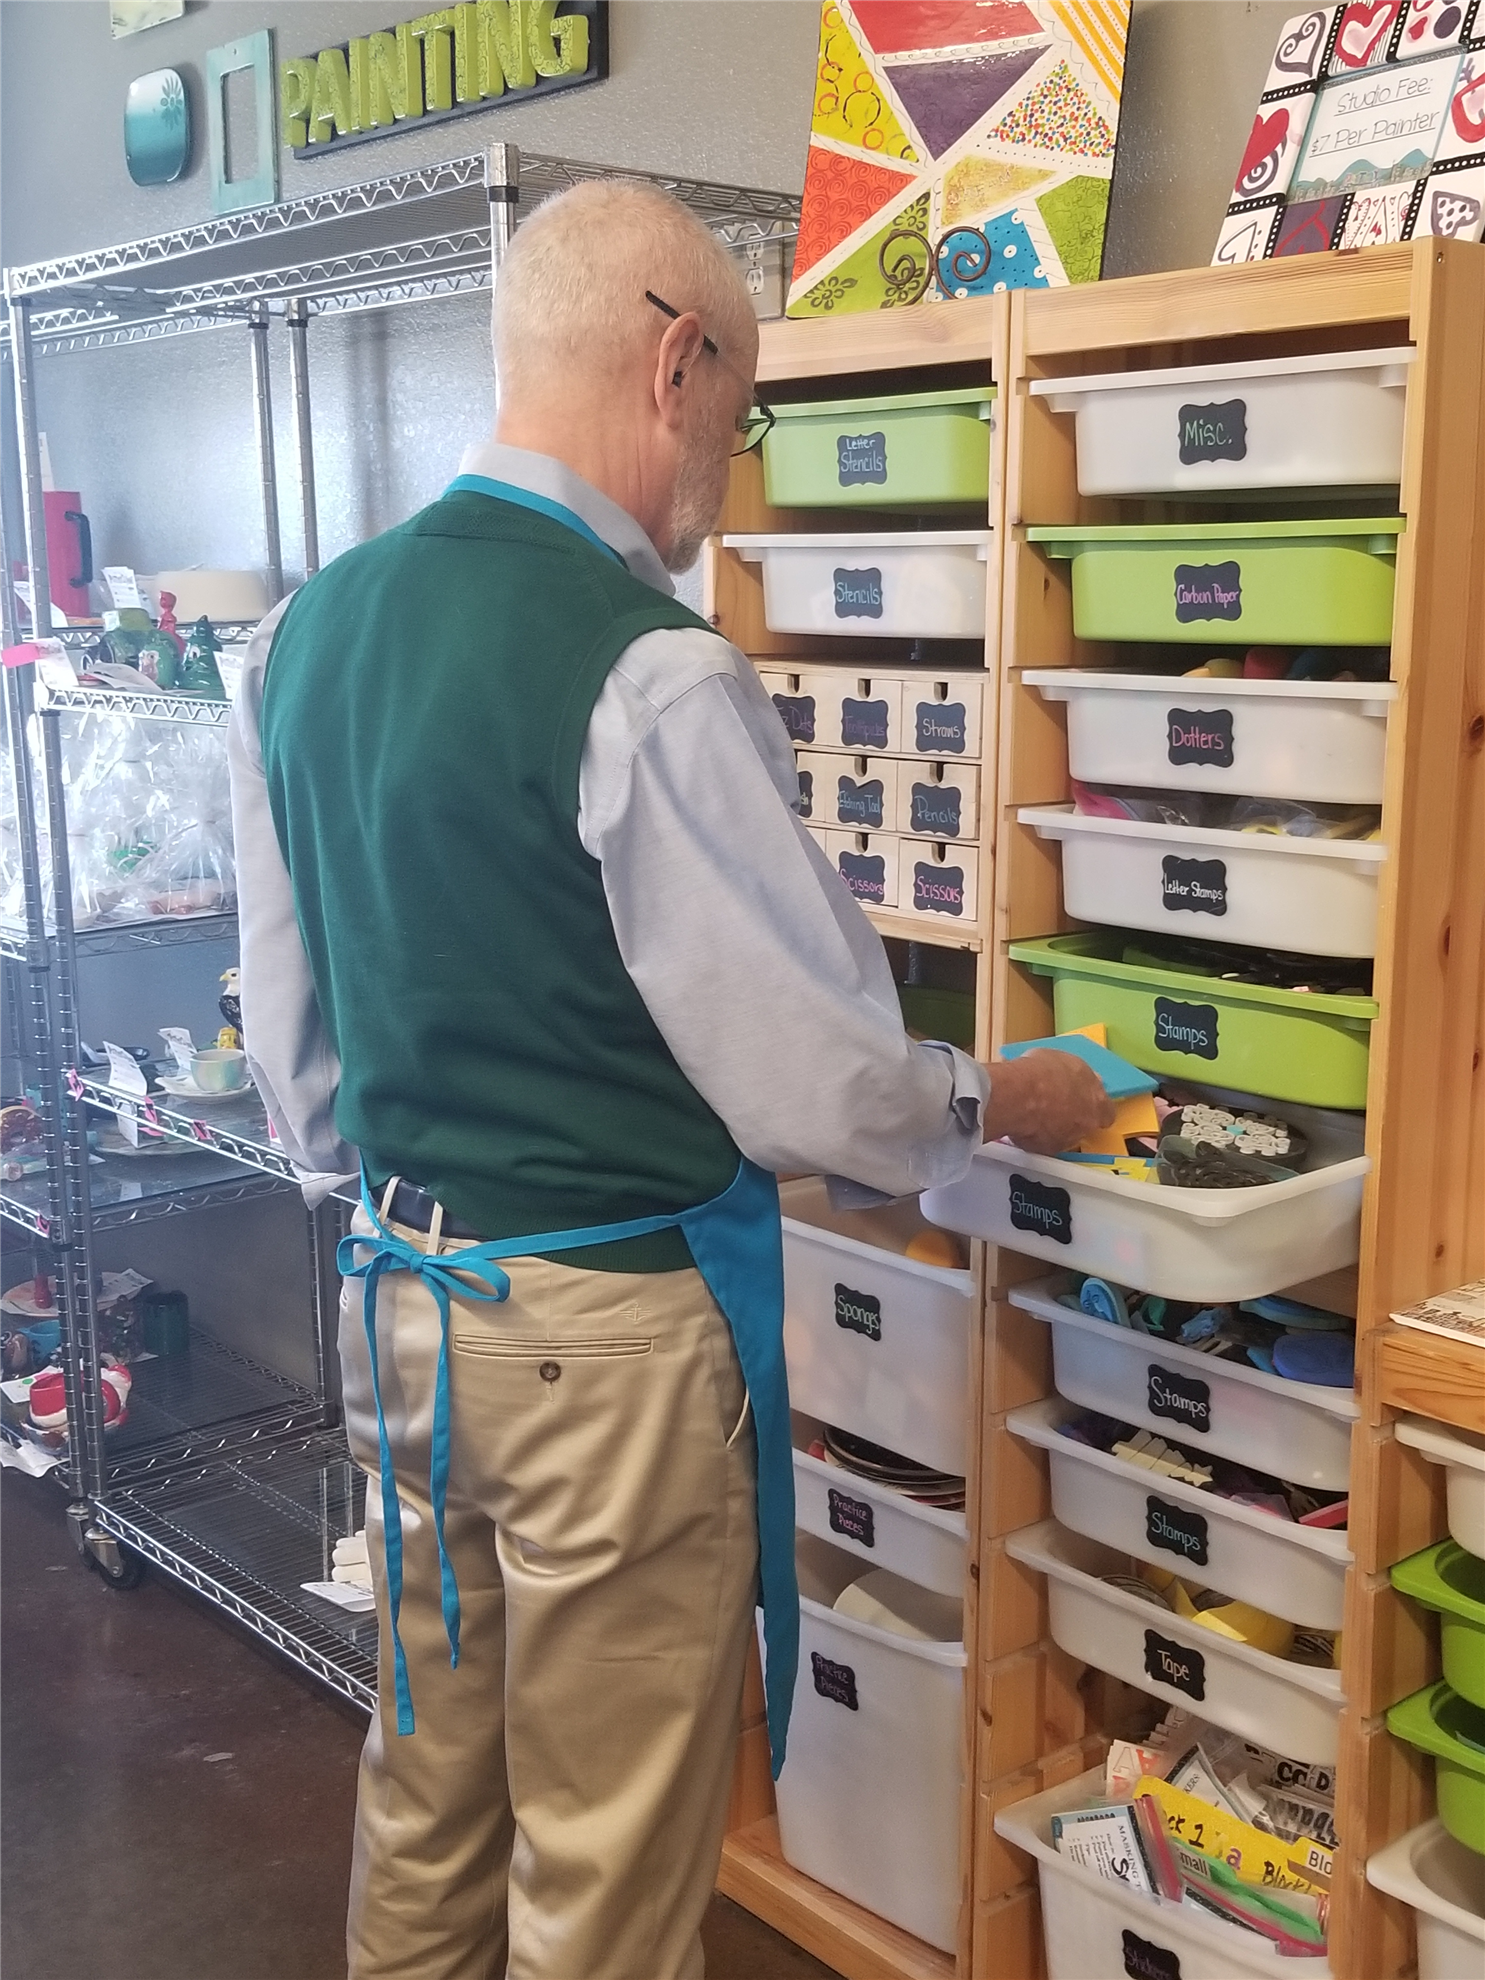 Richard browsing design options for his Empty Bowl.